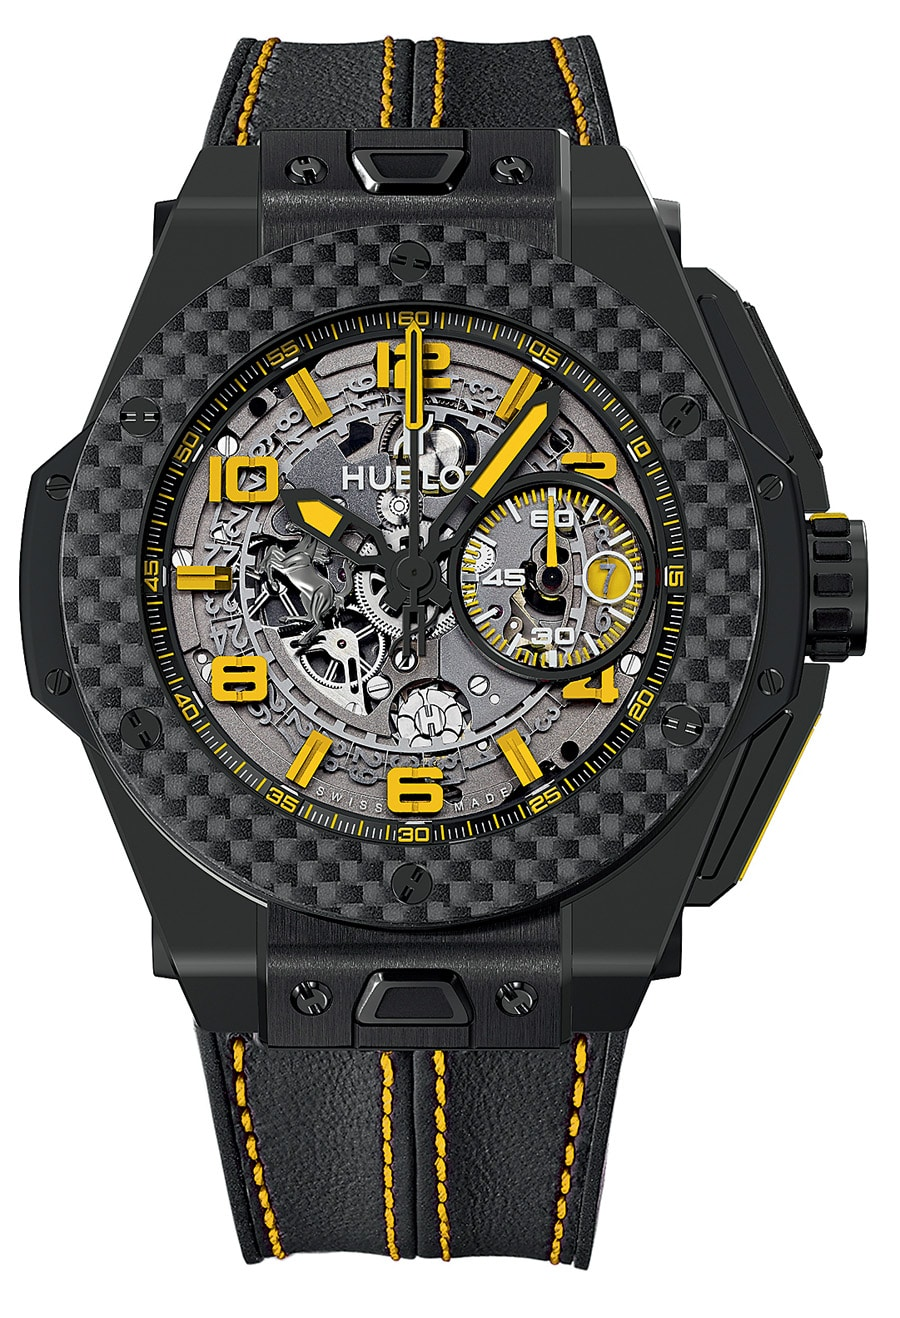 Die Hublot Big Bang Ferrari White Ceramic Carbon...